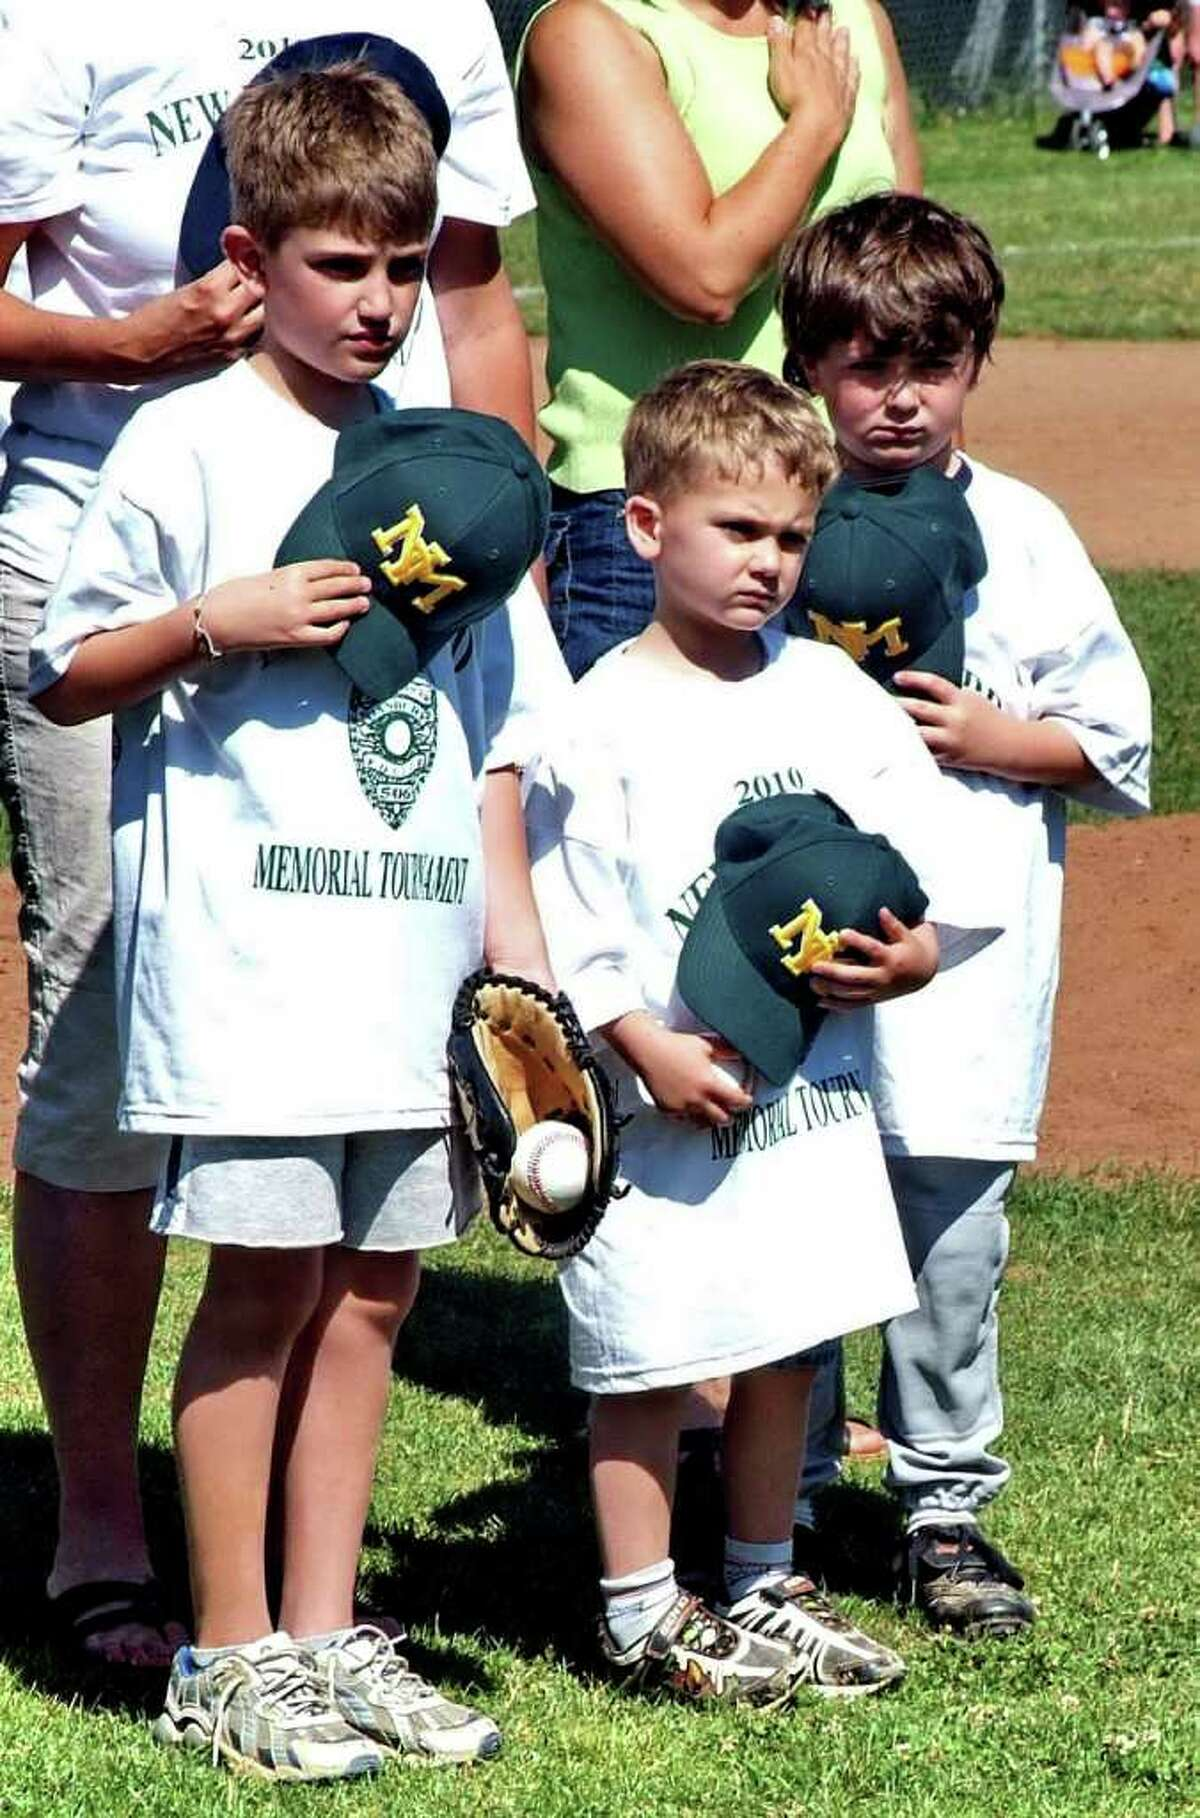 Matthew Hassiak, 8, DJ Hassiak, 4, and Luke Hassiak, 6, say the Pledge of Allegiance, after throwing the first pitch at the New Milford Youth Baseball/Softball Tournament, on Saturday, June 19, 2010. The first pitch was in honor of their father, Danbury police officer, Donald Hassiak, who was killed by a hit and run driver while riding his bike to work.